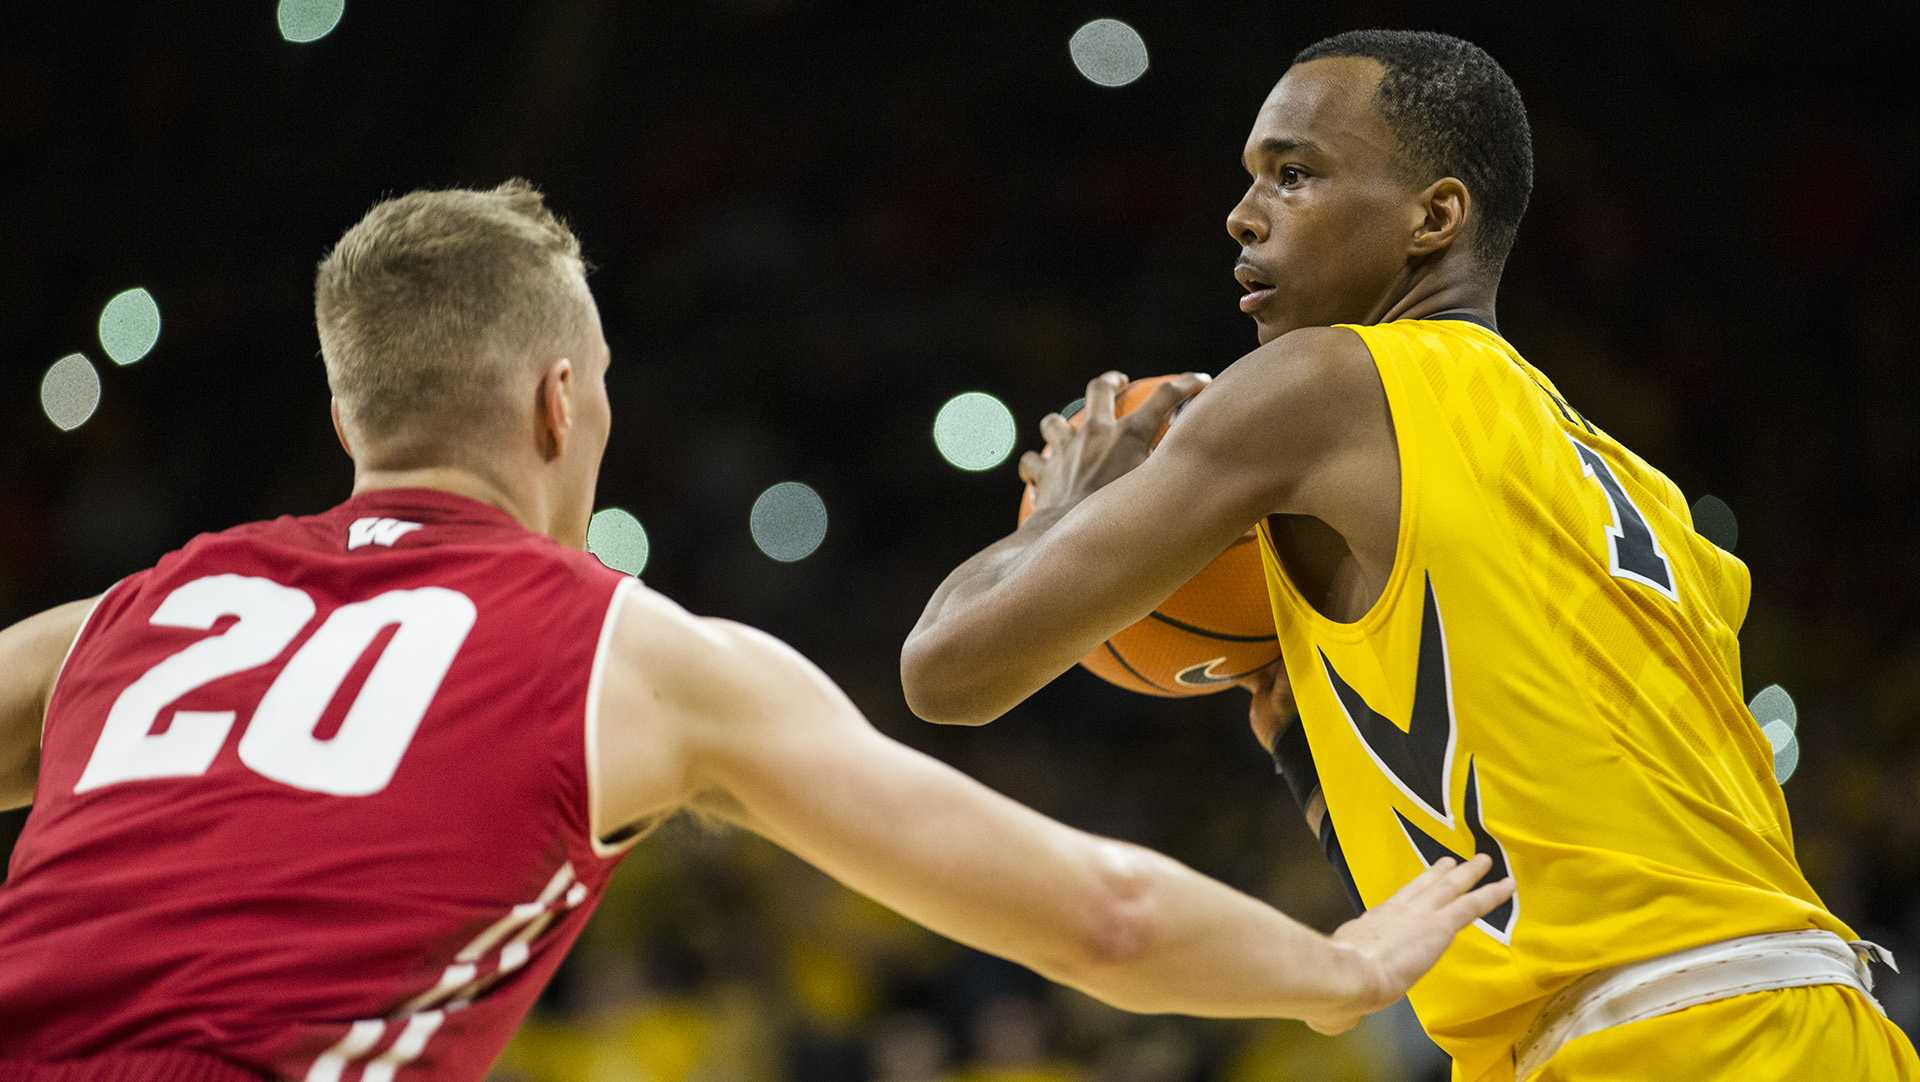 Iowa guard Maishe Dailey (1) looks for an open pass around Wisconsin's T.J. Schlundt (20) during the NCAA men's basketball game between Iowa and Wisconsin at Carver-Hawkeye Arena on Tuesday, Jan. 23, 2018. The Hawkeyes are going into the game with a conference record of 1-7. Iowa went on to defeat Wisconsin 85-67. (Ben Allan Smith/The Daily Iowan)